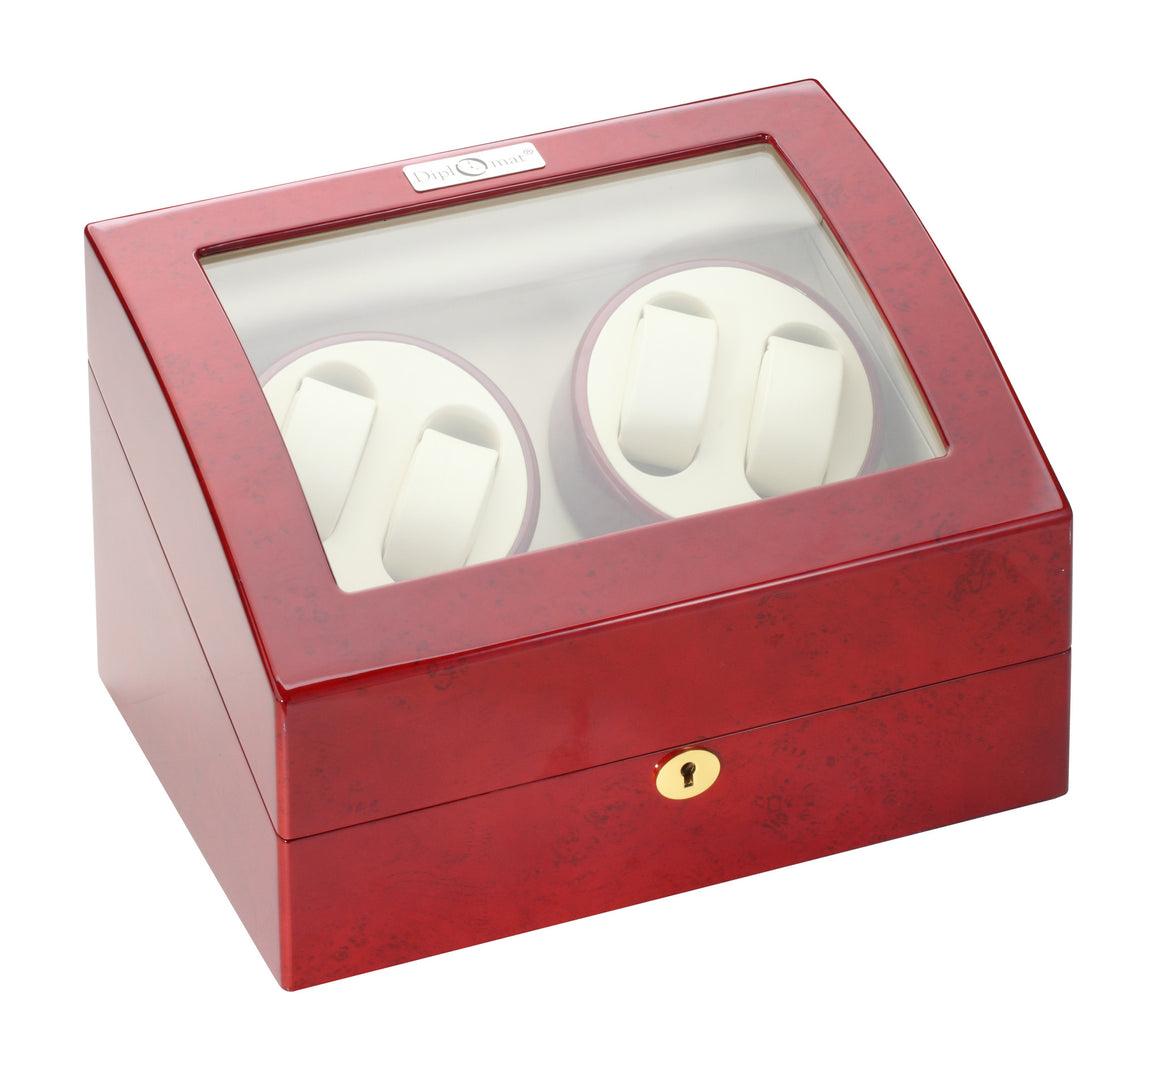 Diplomat Rosewood Four Watch Winder - Watch Box Co. - 2